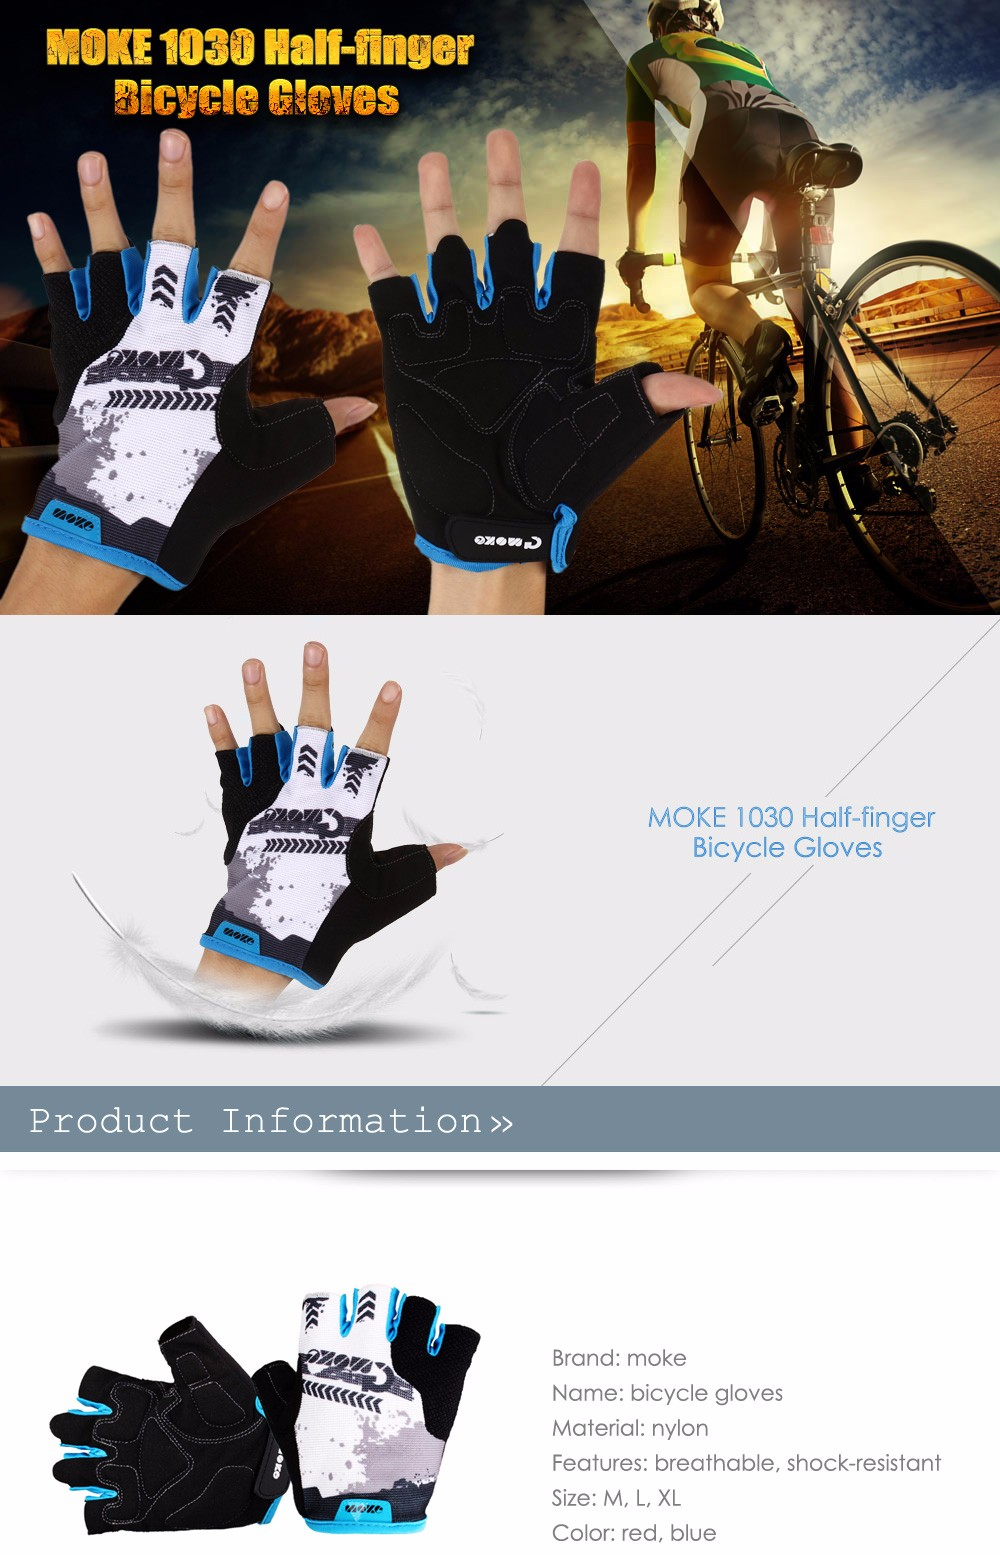 MOKE 1030 Breathable Anti-shock Half-finger Bicycle Gloves